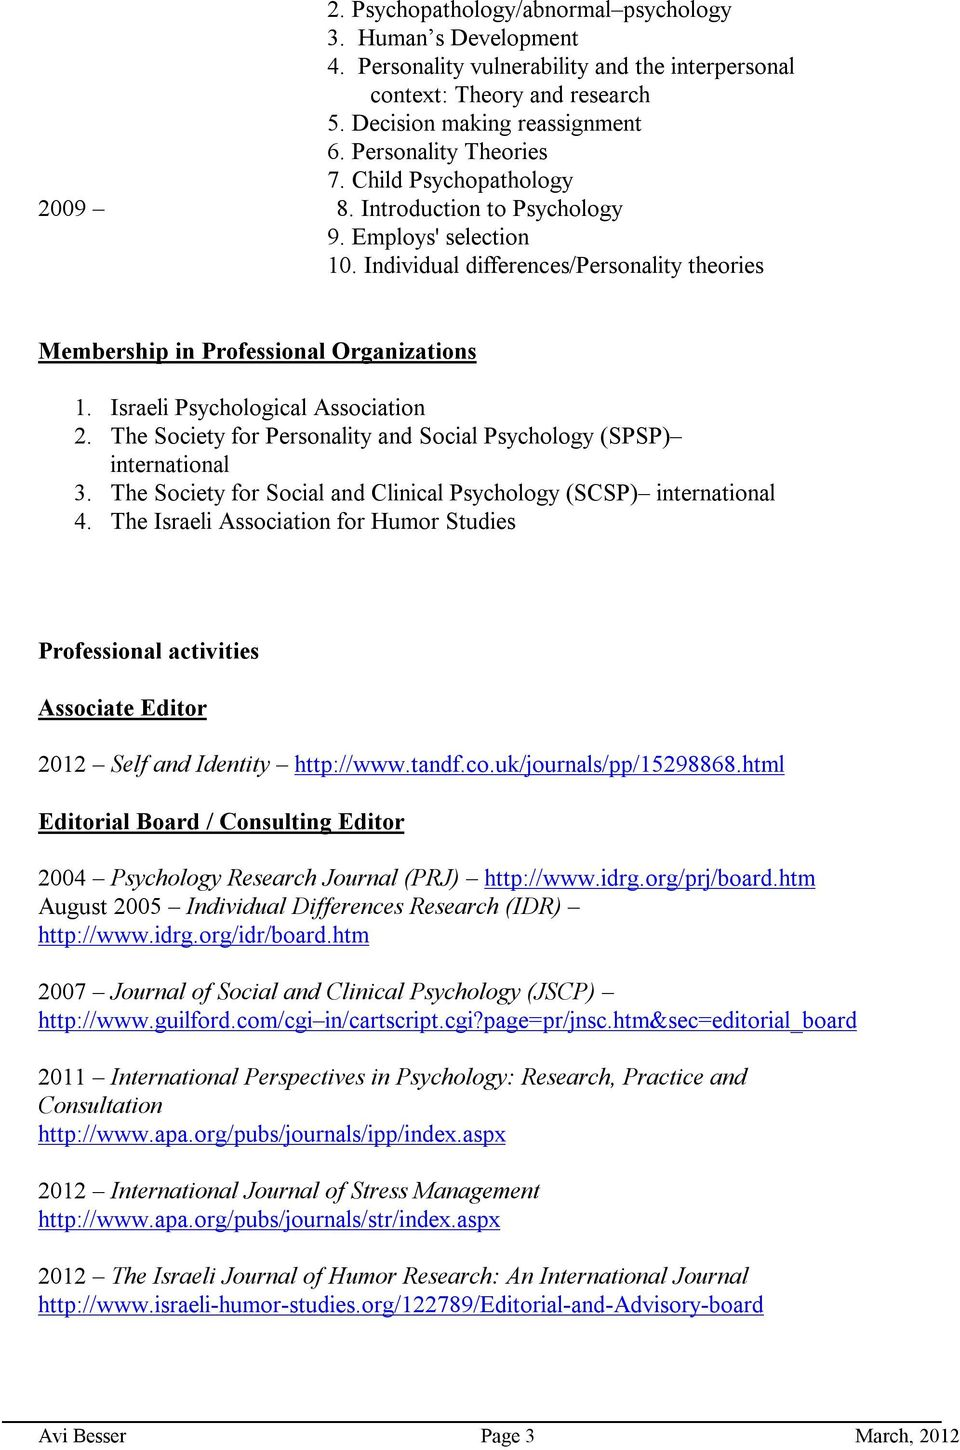 Israeli Psychological Association 2. The Society For Personality And Social  Psychology (SPSP) International